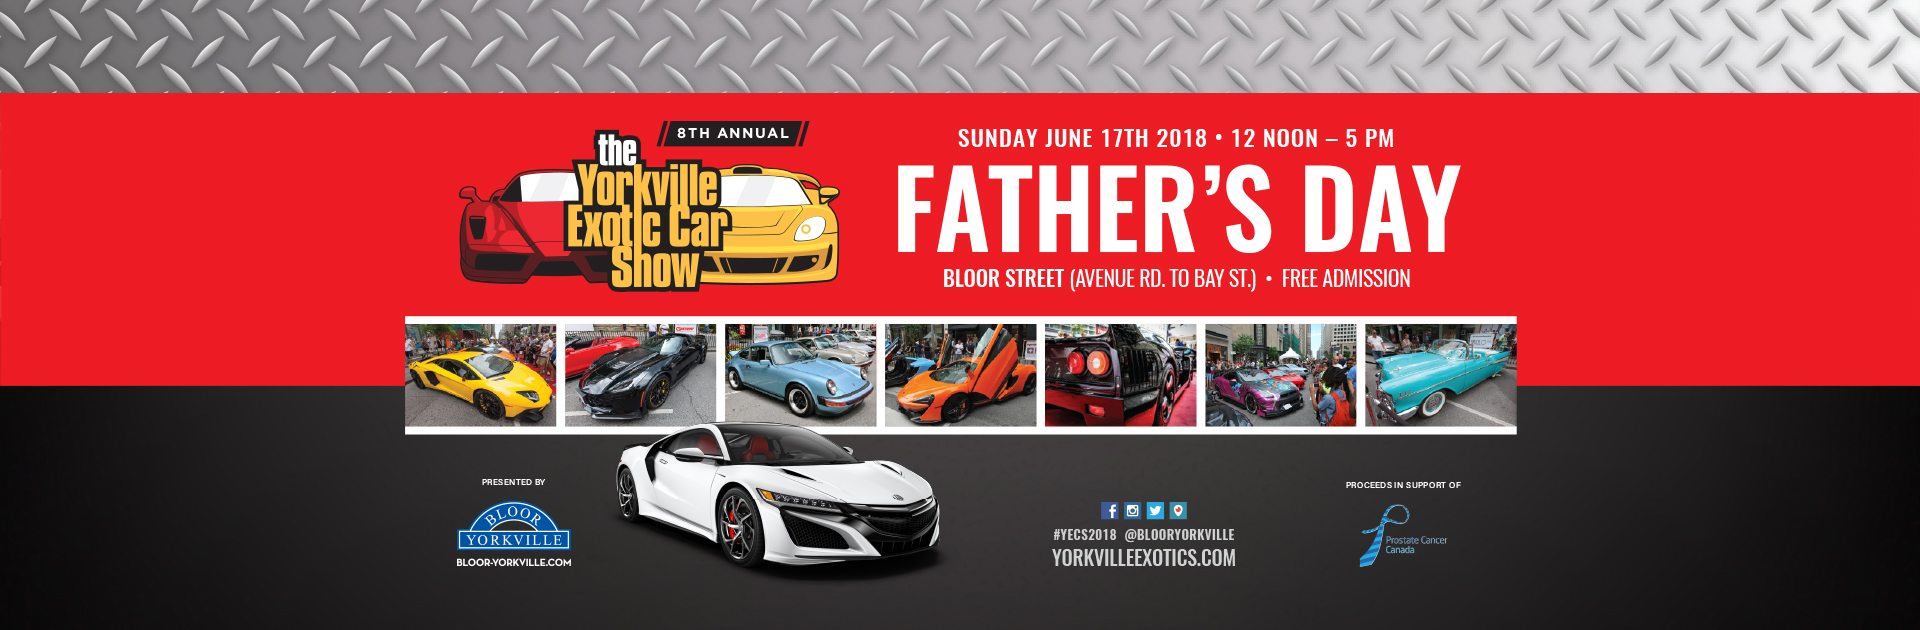 Celebrate Dad on Father's Day at the  Yorkville Exotic Car Show